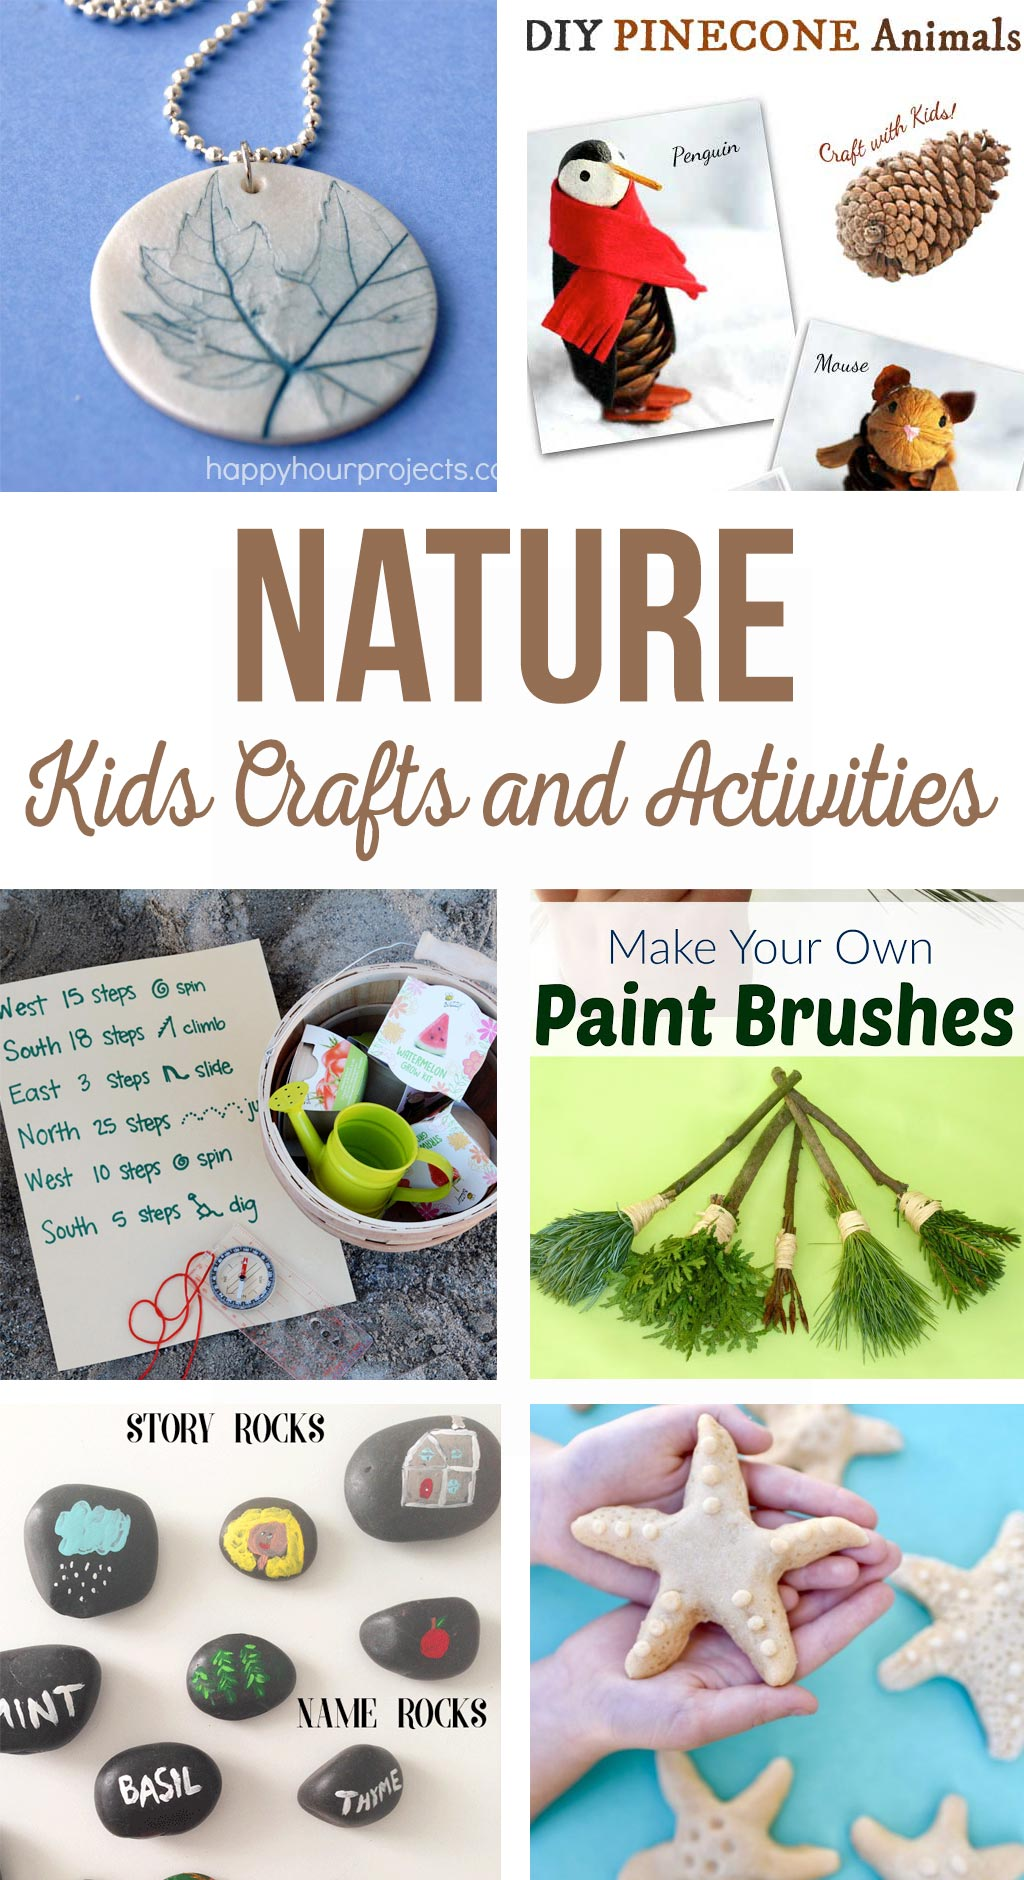 Nature Kids Crafts and Activities - DIY Butterfly House, painted rocks, rainforest in a jar, salt dough starfish, treasure hunt, hummingbird feeder, pinecone animals and explorer journal